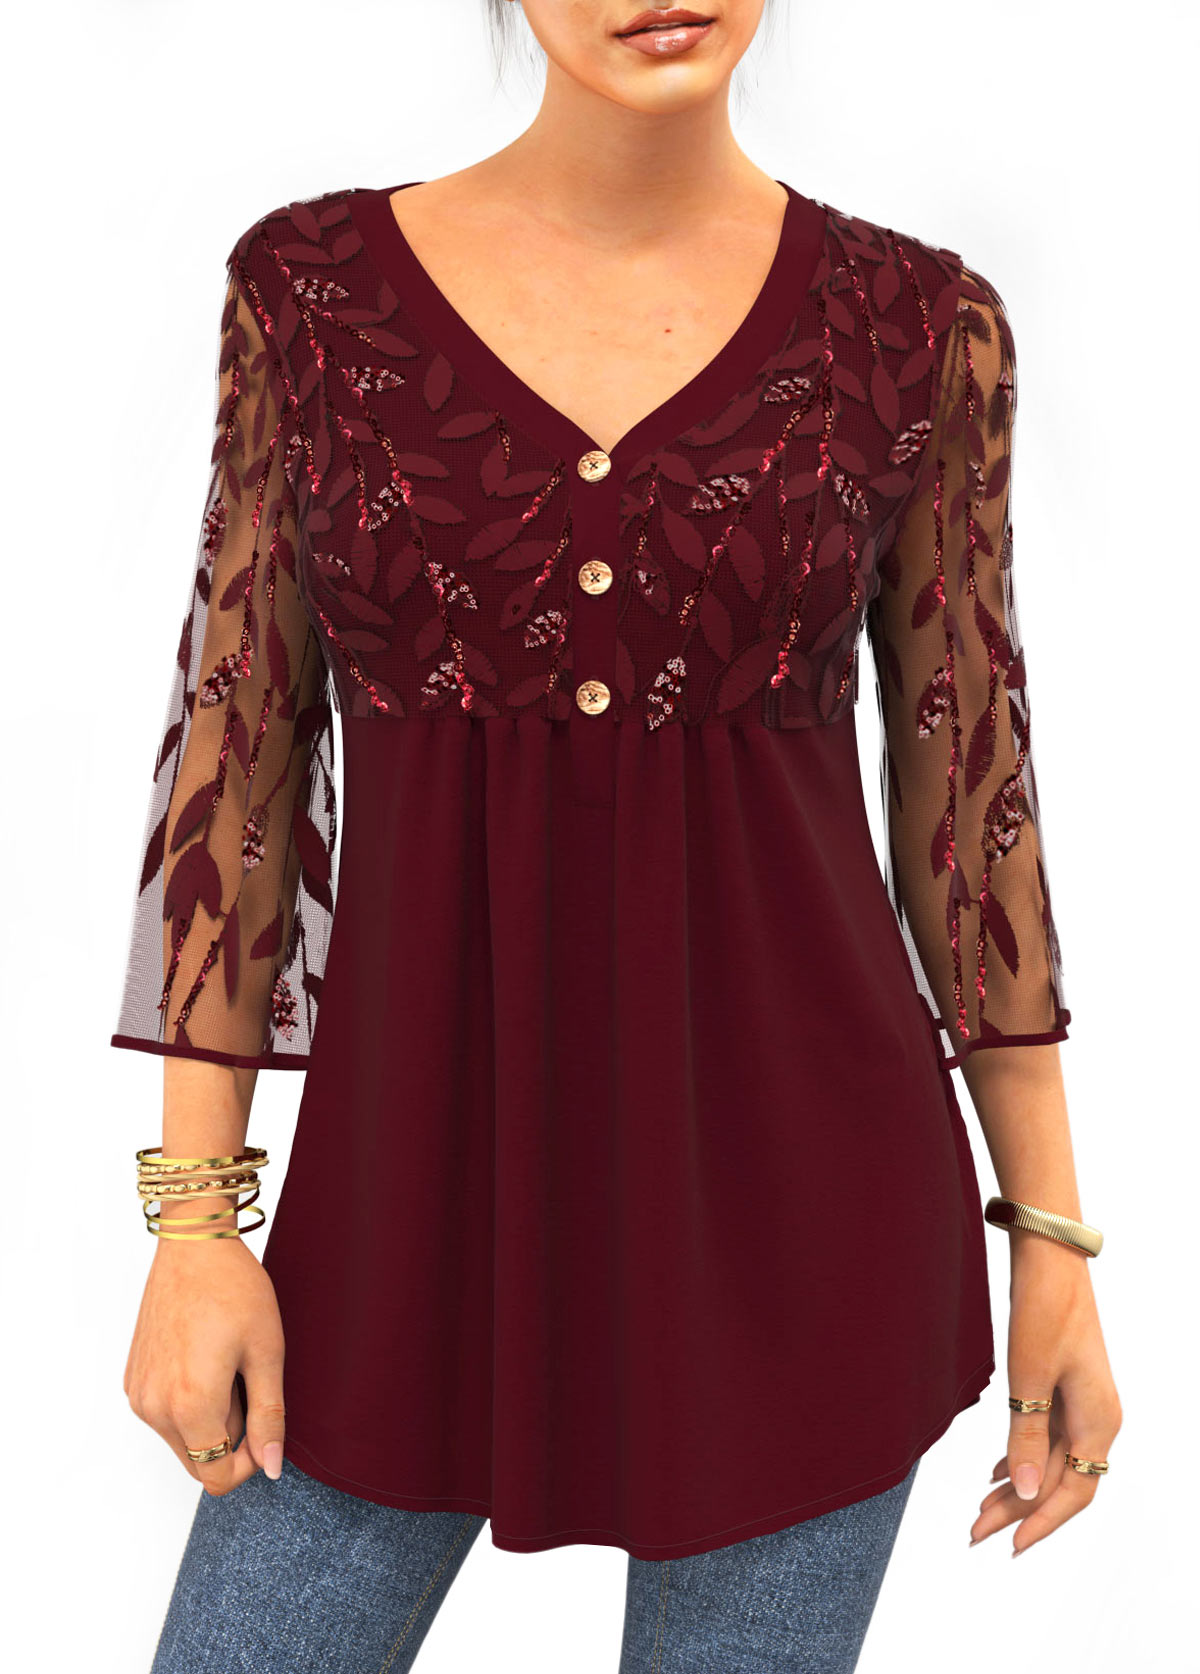 ROTITA Sequin Lace Stitching 3/4 Sleeve Solid T Shirt